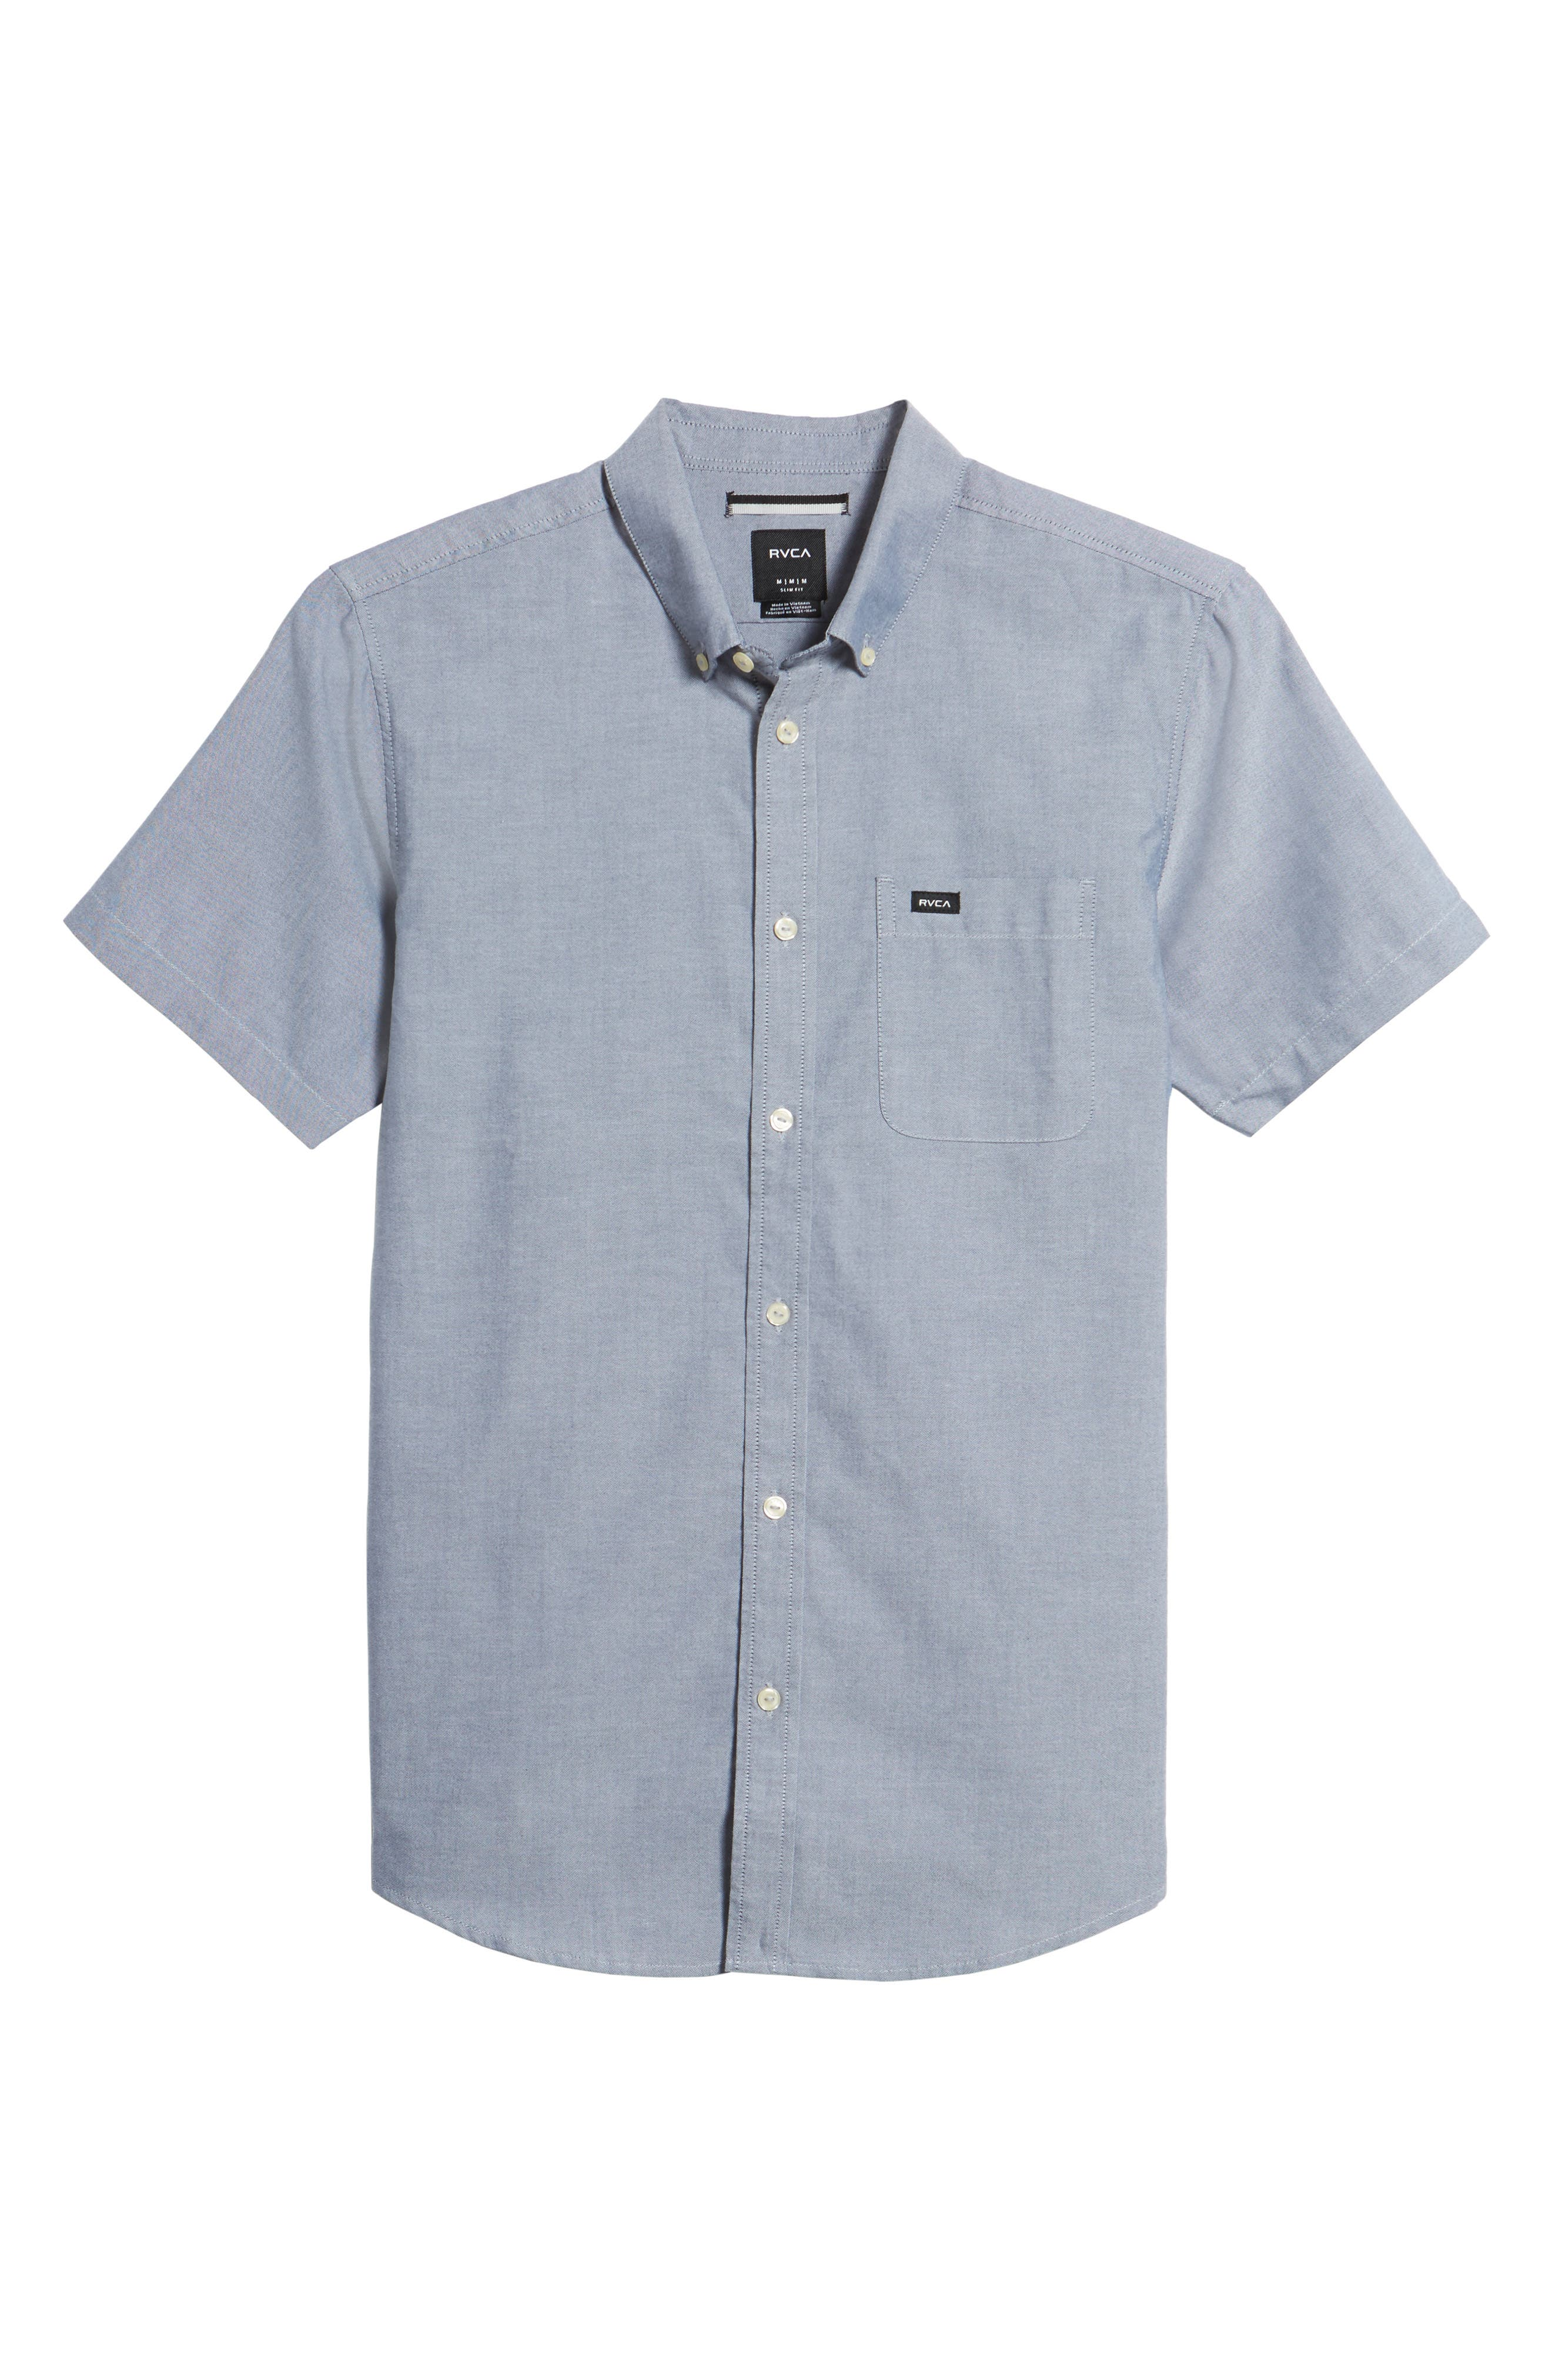 RVCA 'That'll Do' Slim Fit Short Sleeve Oxford Shirt, Main, color, DISTANT BLUE